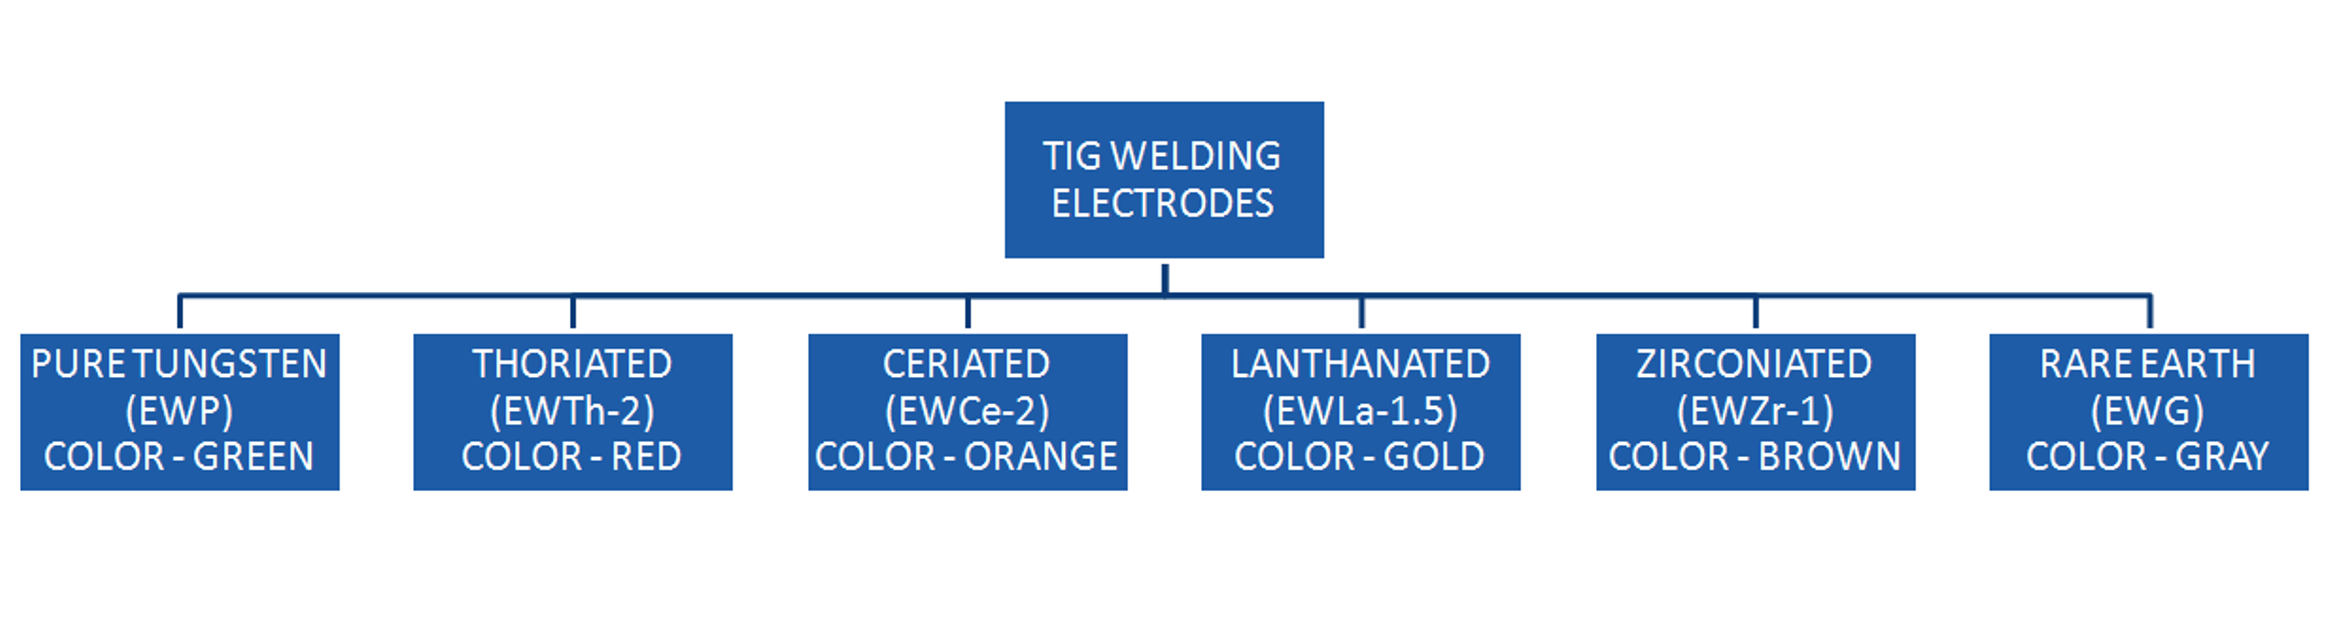 TIG Welding (GTAW) Electrodes